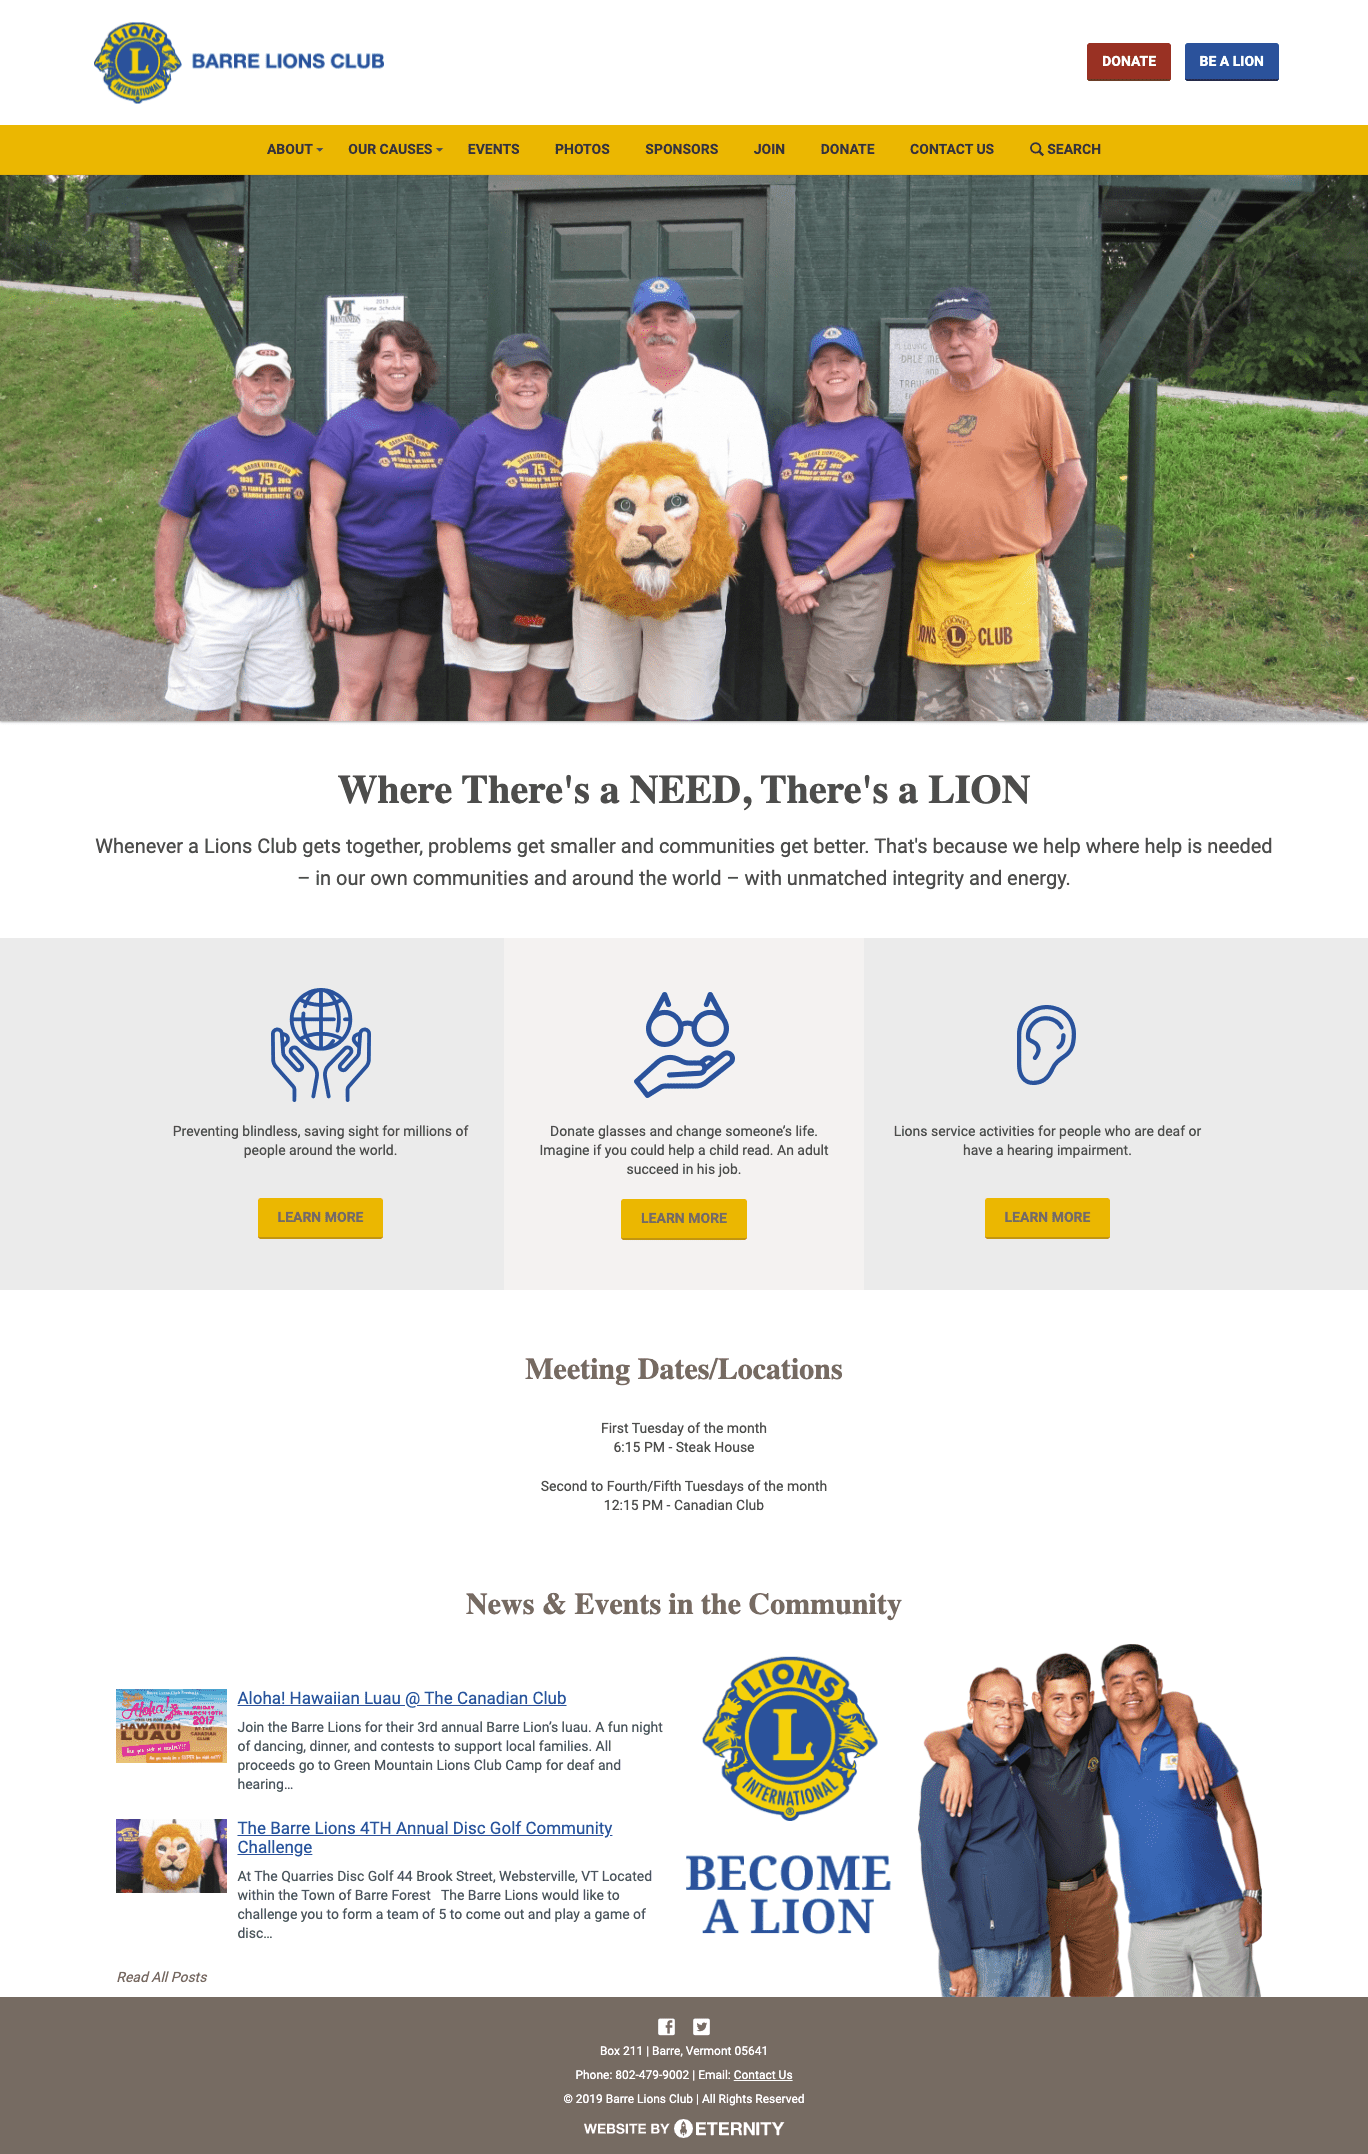 Barre Lions Club